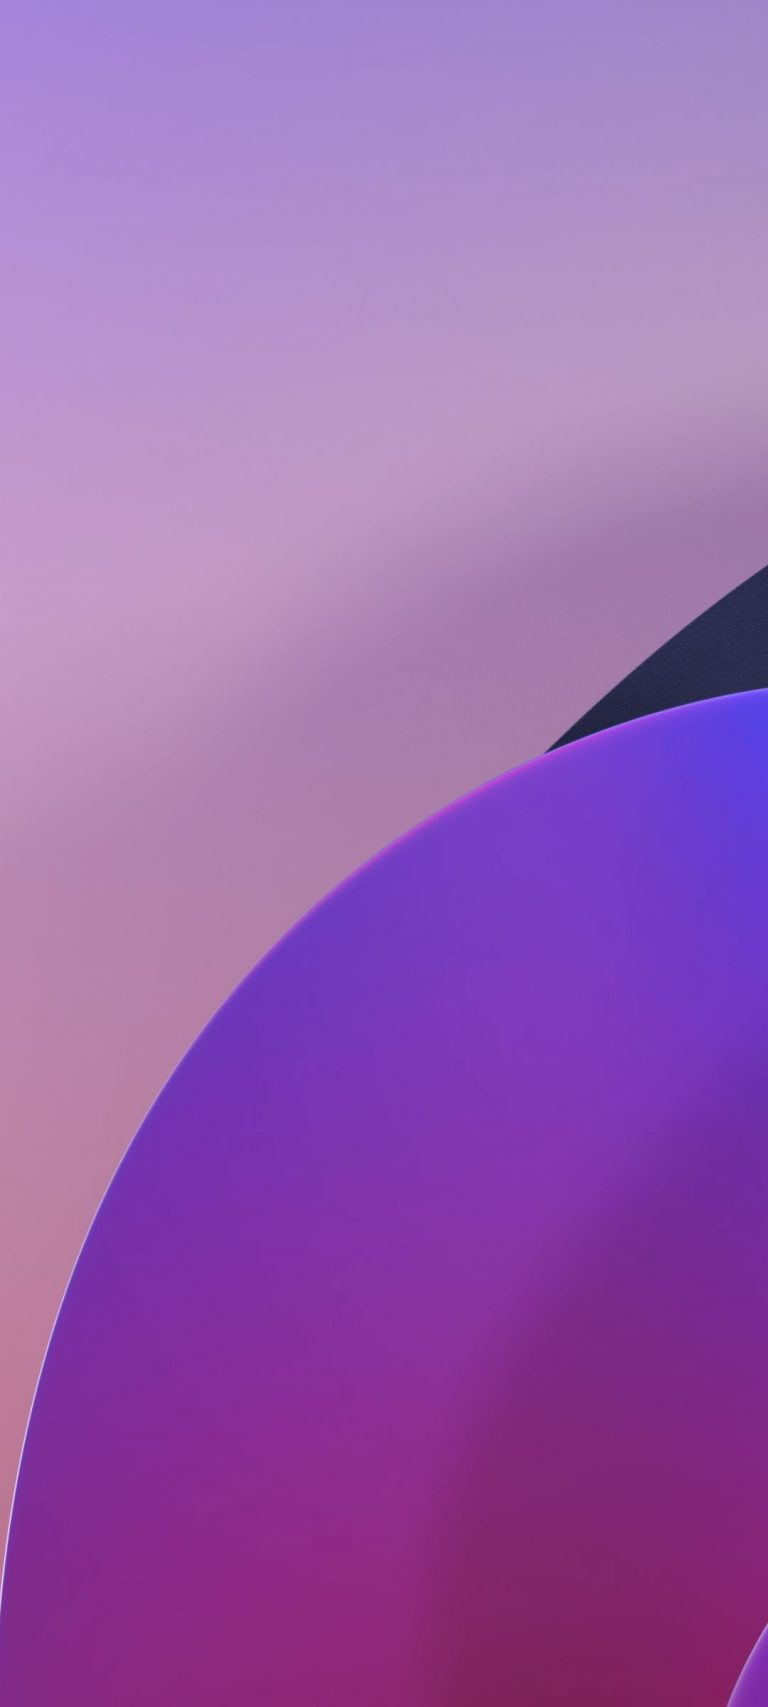 OnePlus 8T Stock Wallpaper - 04